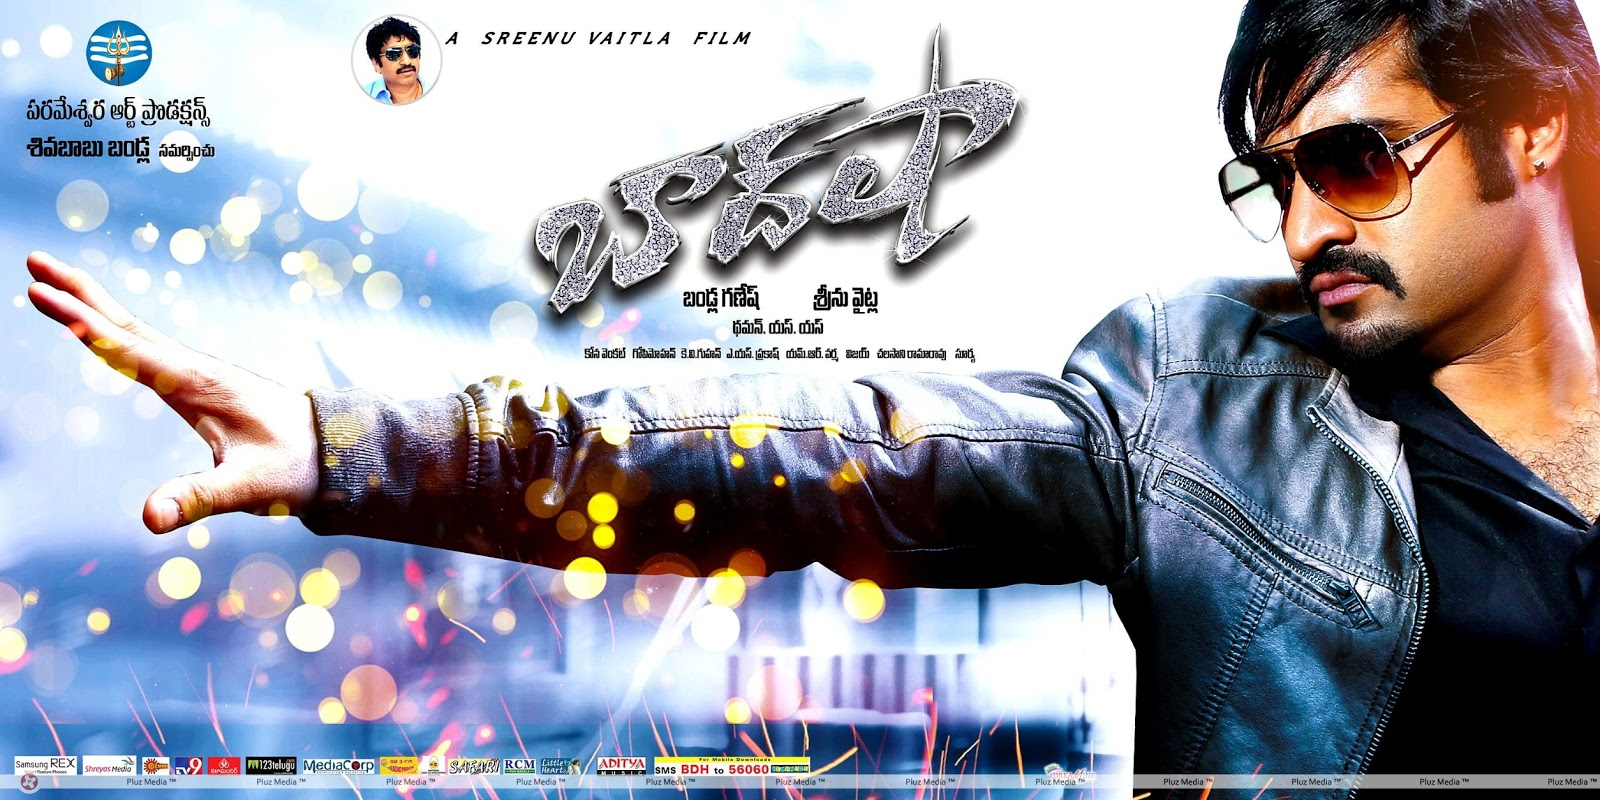 Baadshah Movie Latest New HD Posters[No Watermark] |Live ... Baadshah 2013 Posters